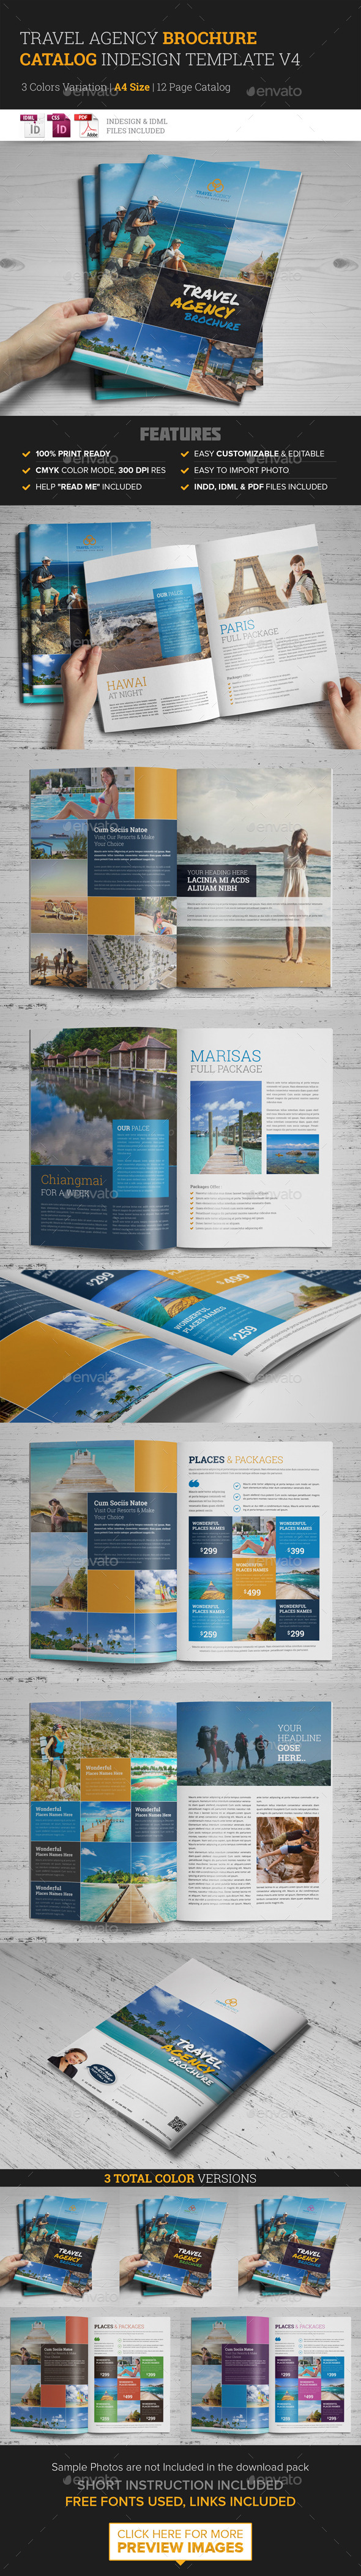 Travel Agency Brochure Catalog InDesign Template 4 - Corporate Brochures